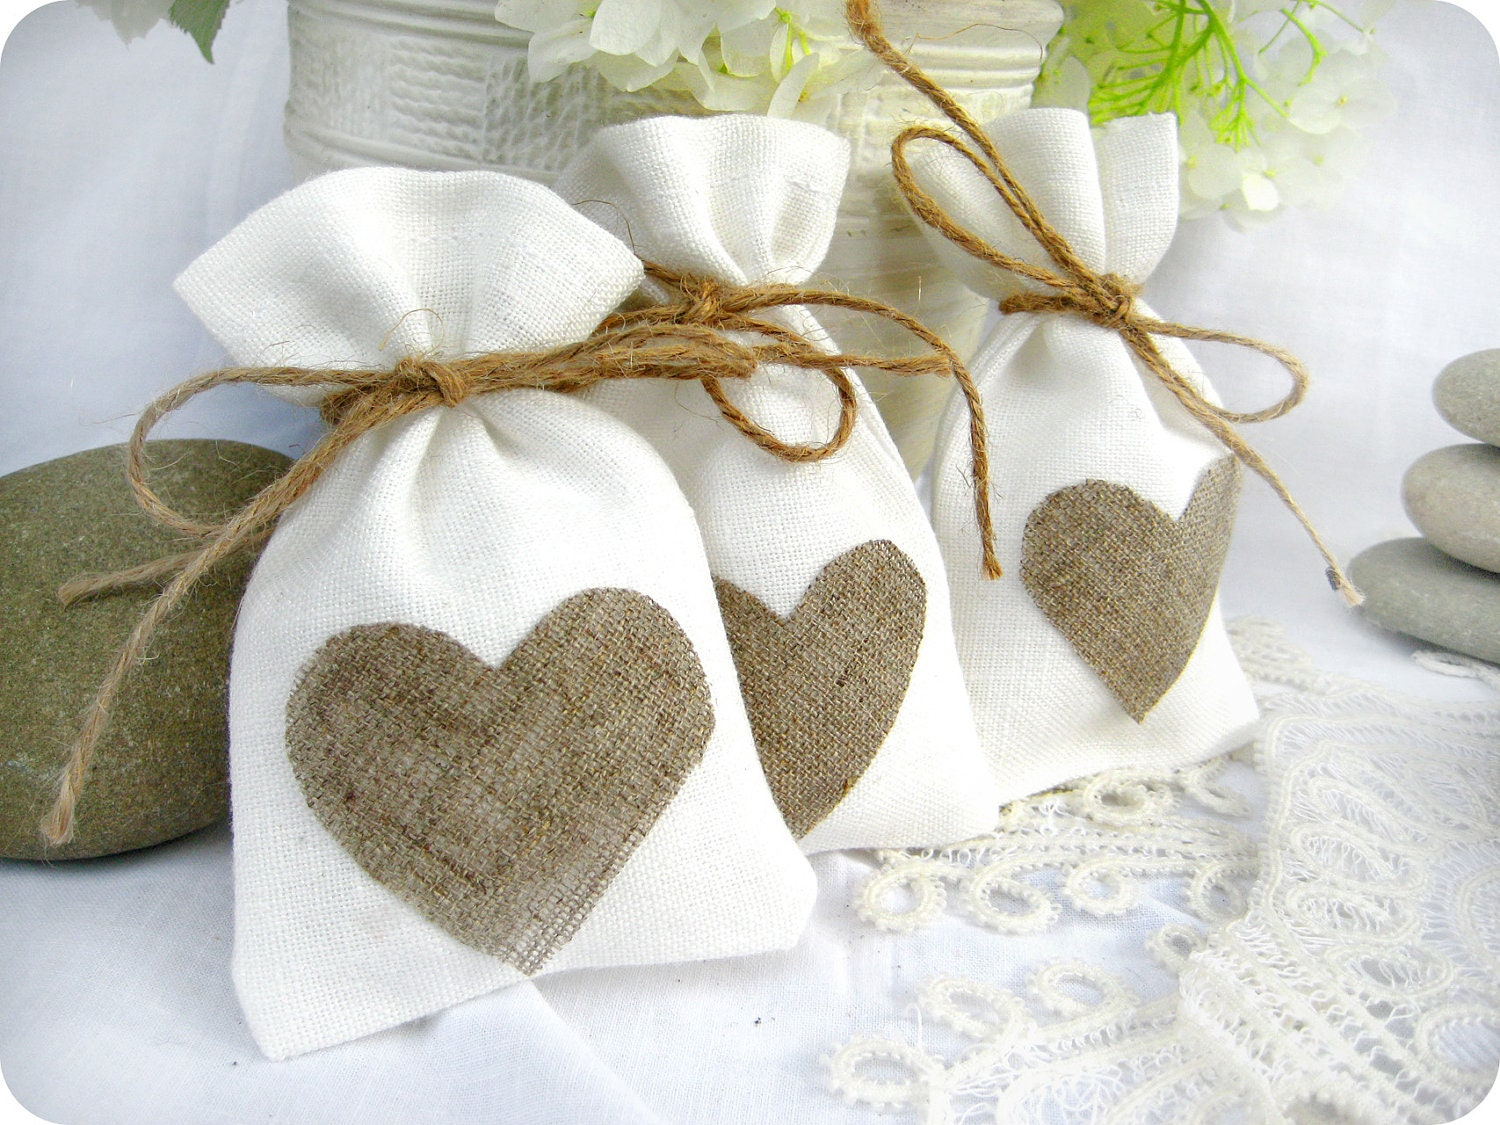 Popular items for 50 wedding favors on Etsy